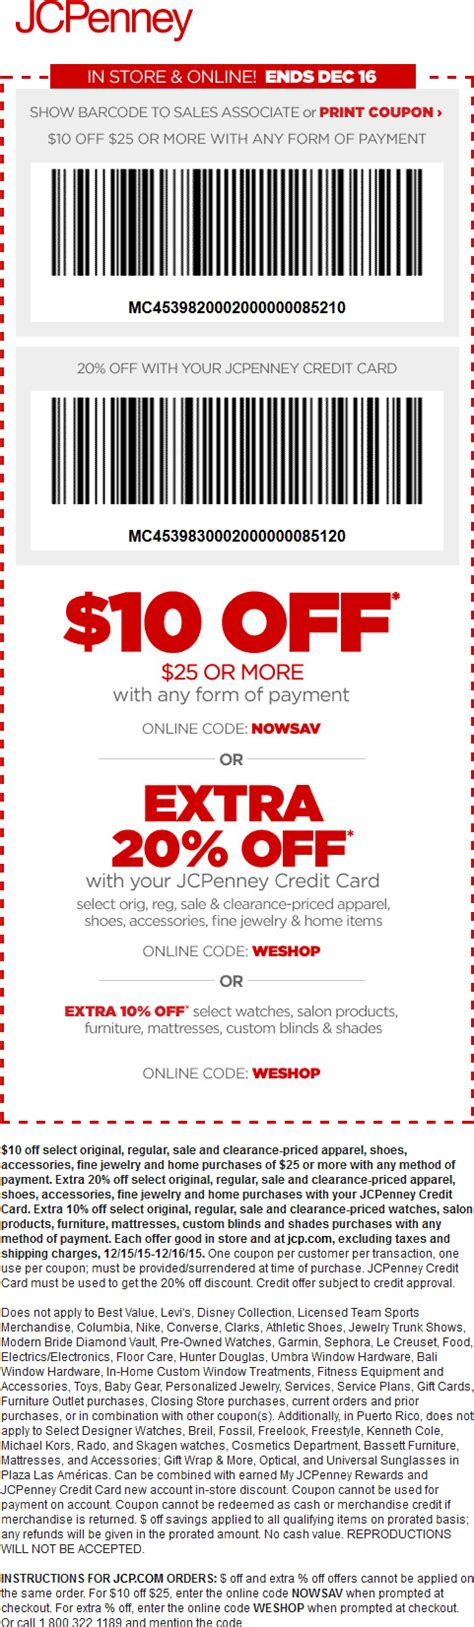 Jcpenney Printable Coupons June 2017